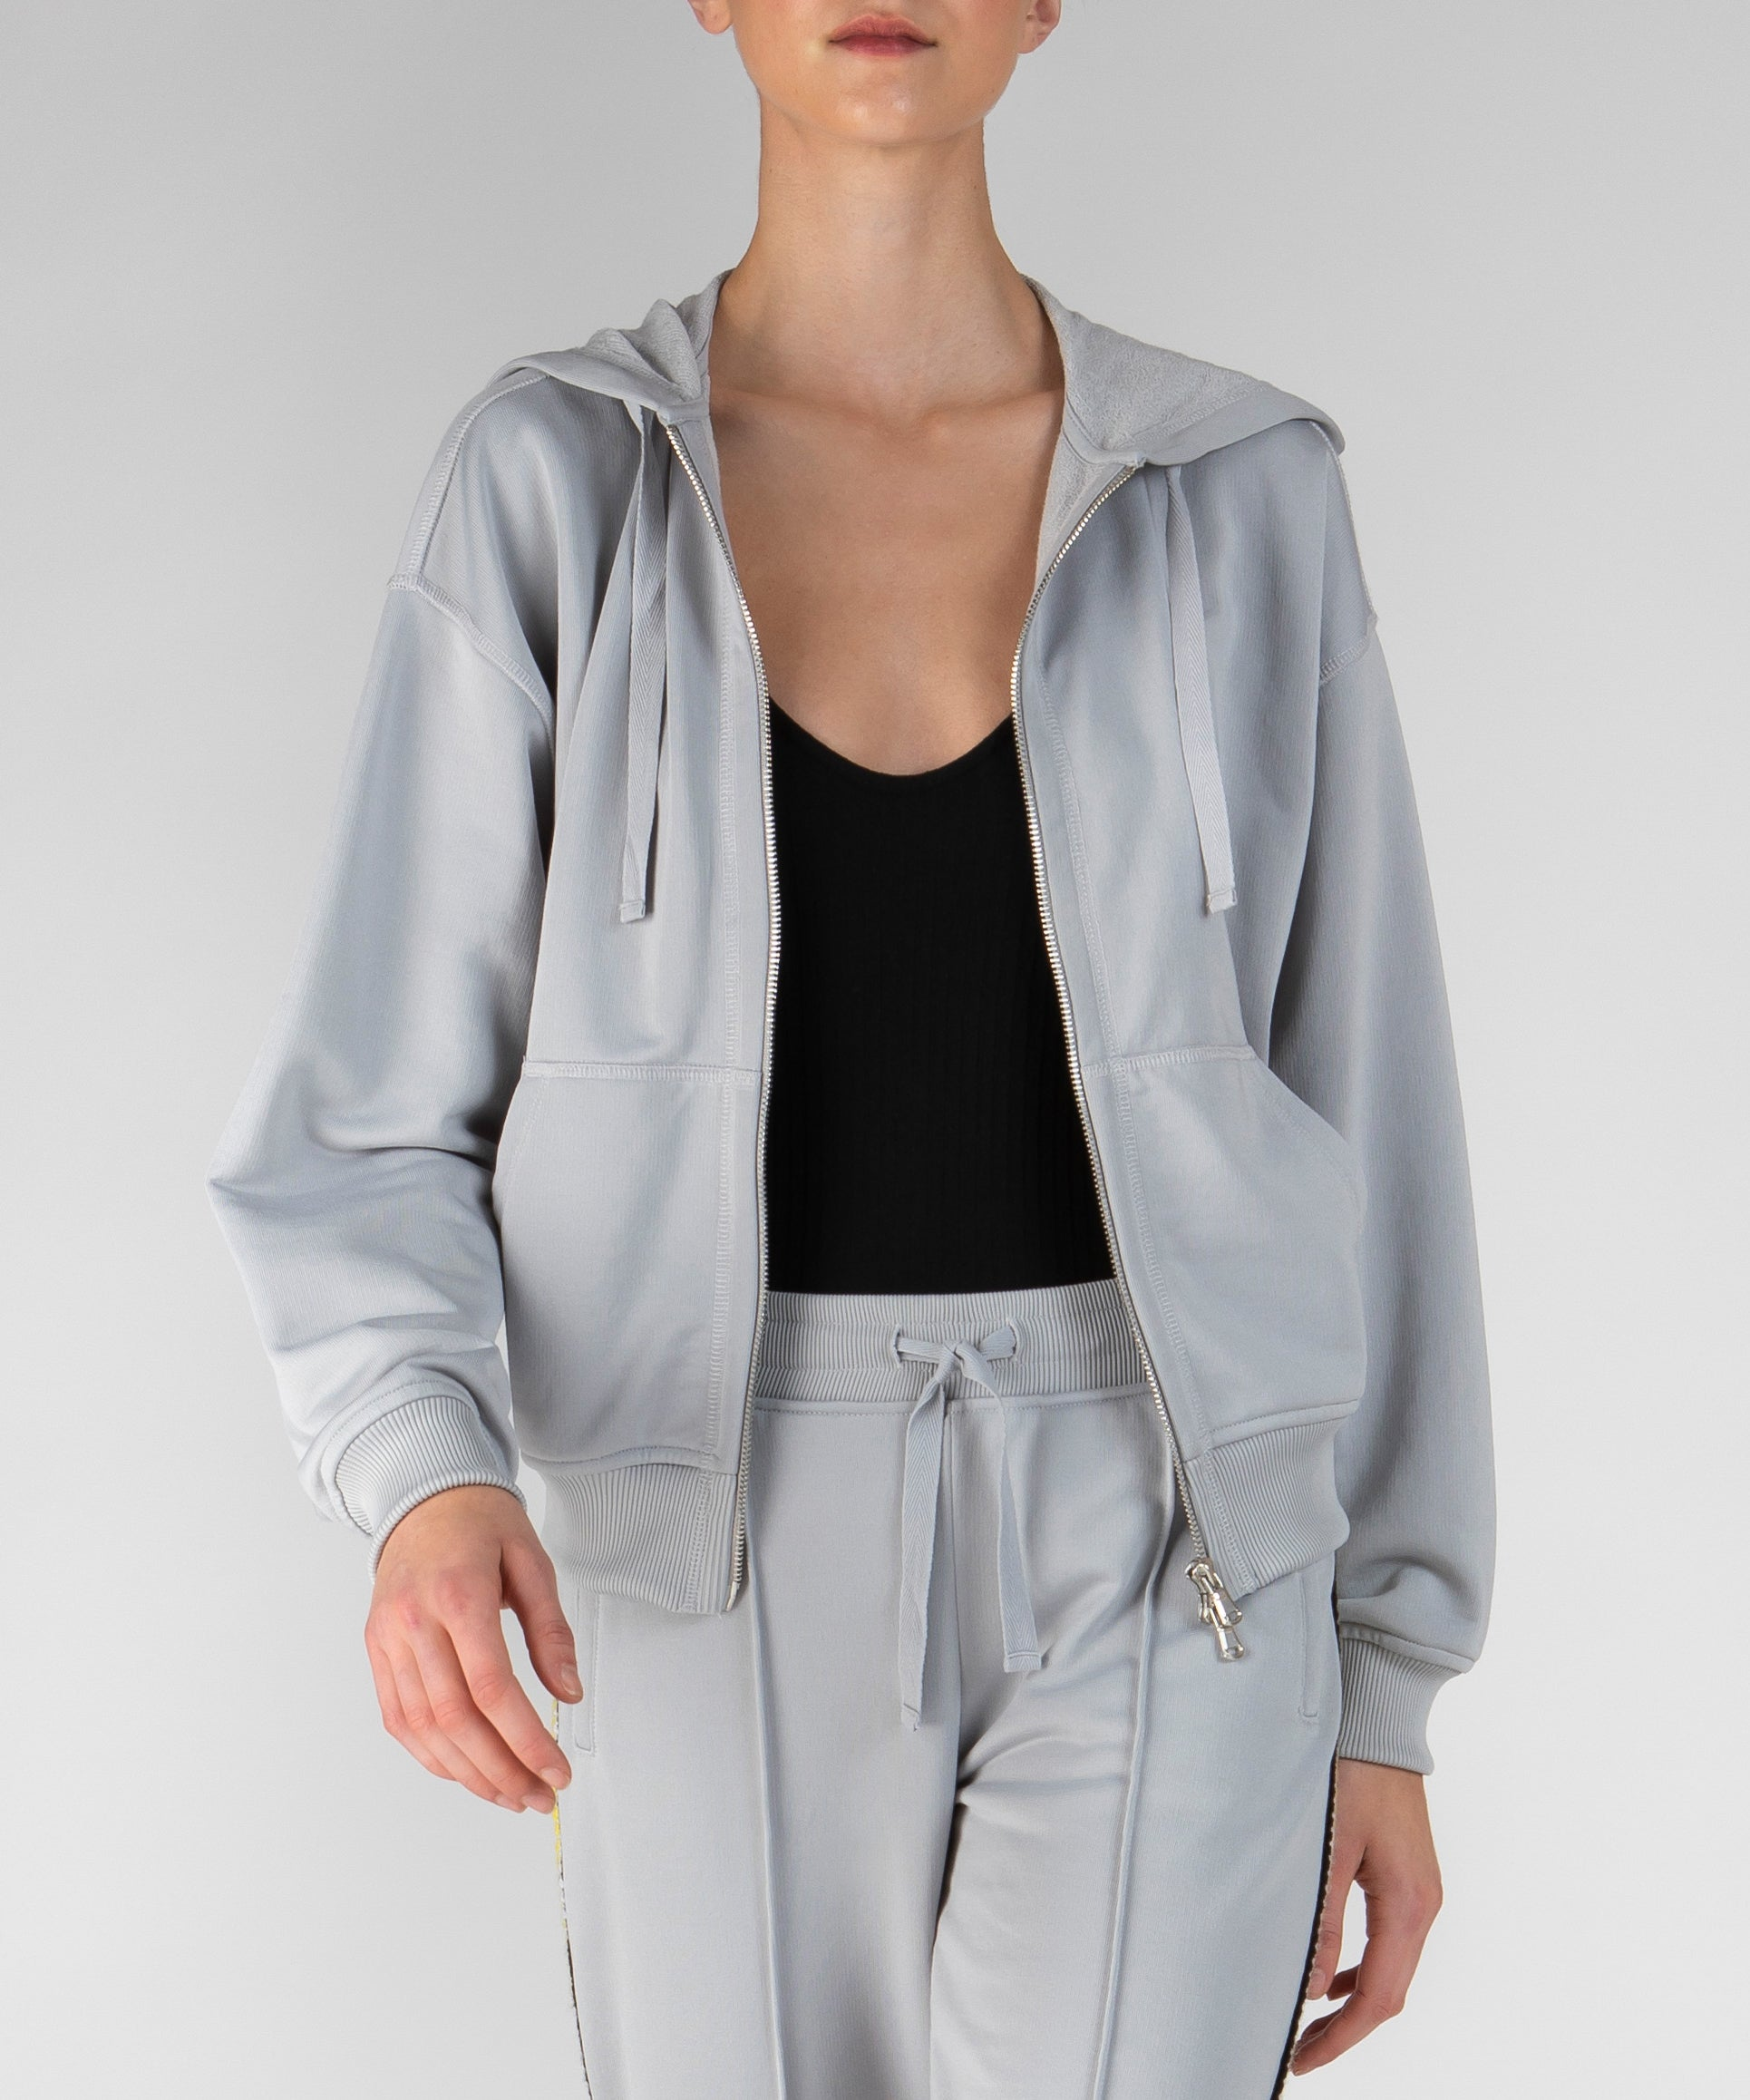 Grey Fog French Terry Racing Stripe Zip-Up Sweatshirt - Women's Luxe Loungewear by ATM Anthony Thomas Melillo